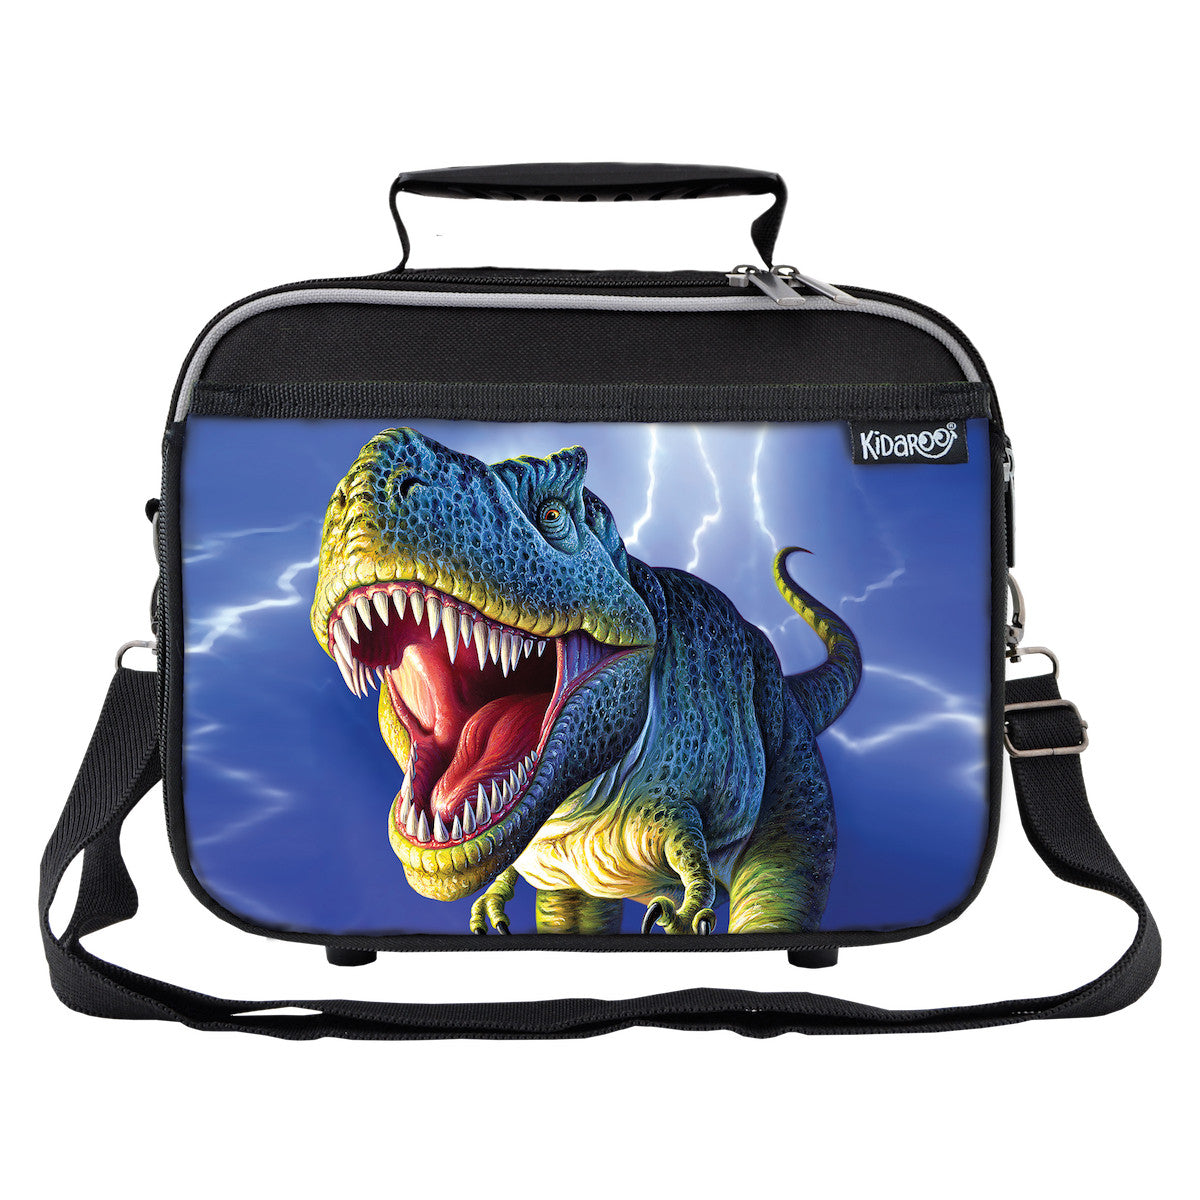 Kidaroo Black Lightning Rex Dinosaur School Lunchbox Tote for Boys, Girls